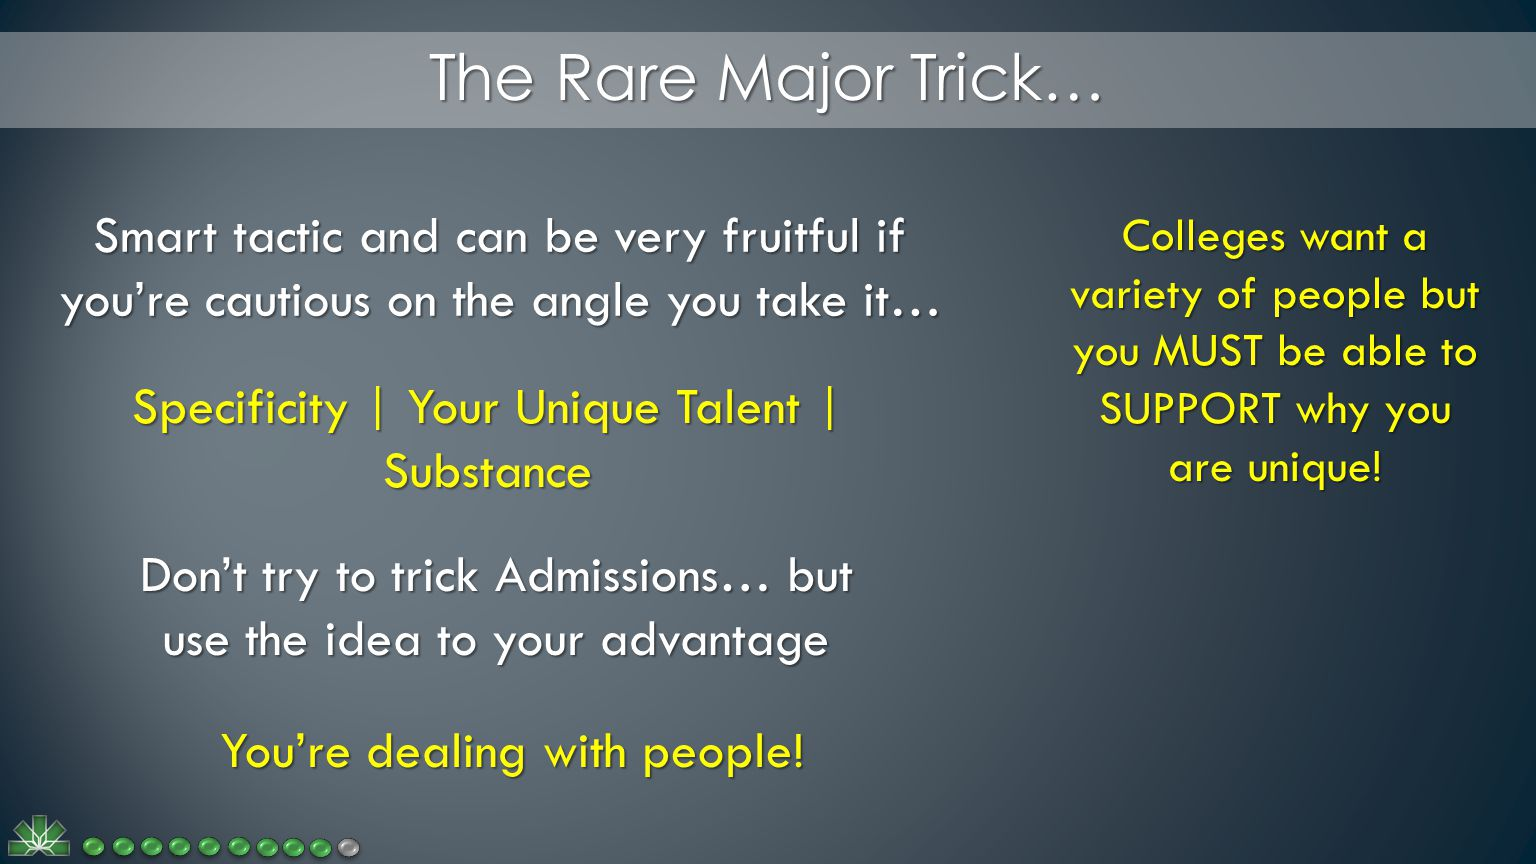 The Rare Major Trick… Smart tactic and can be very fruitful if you're cautious on the angle you take it… Colleges want a variety of people but you MUST be able to SUPPORT why you are unique.